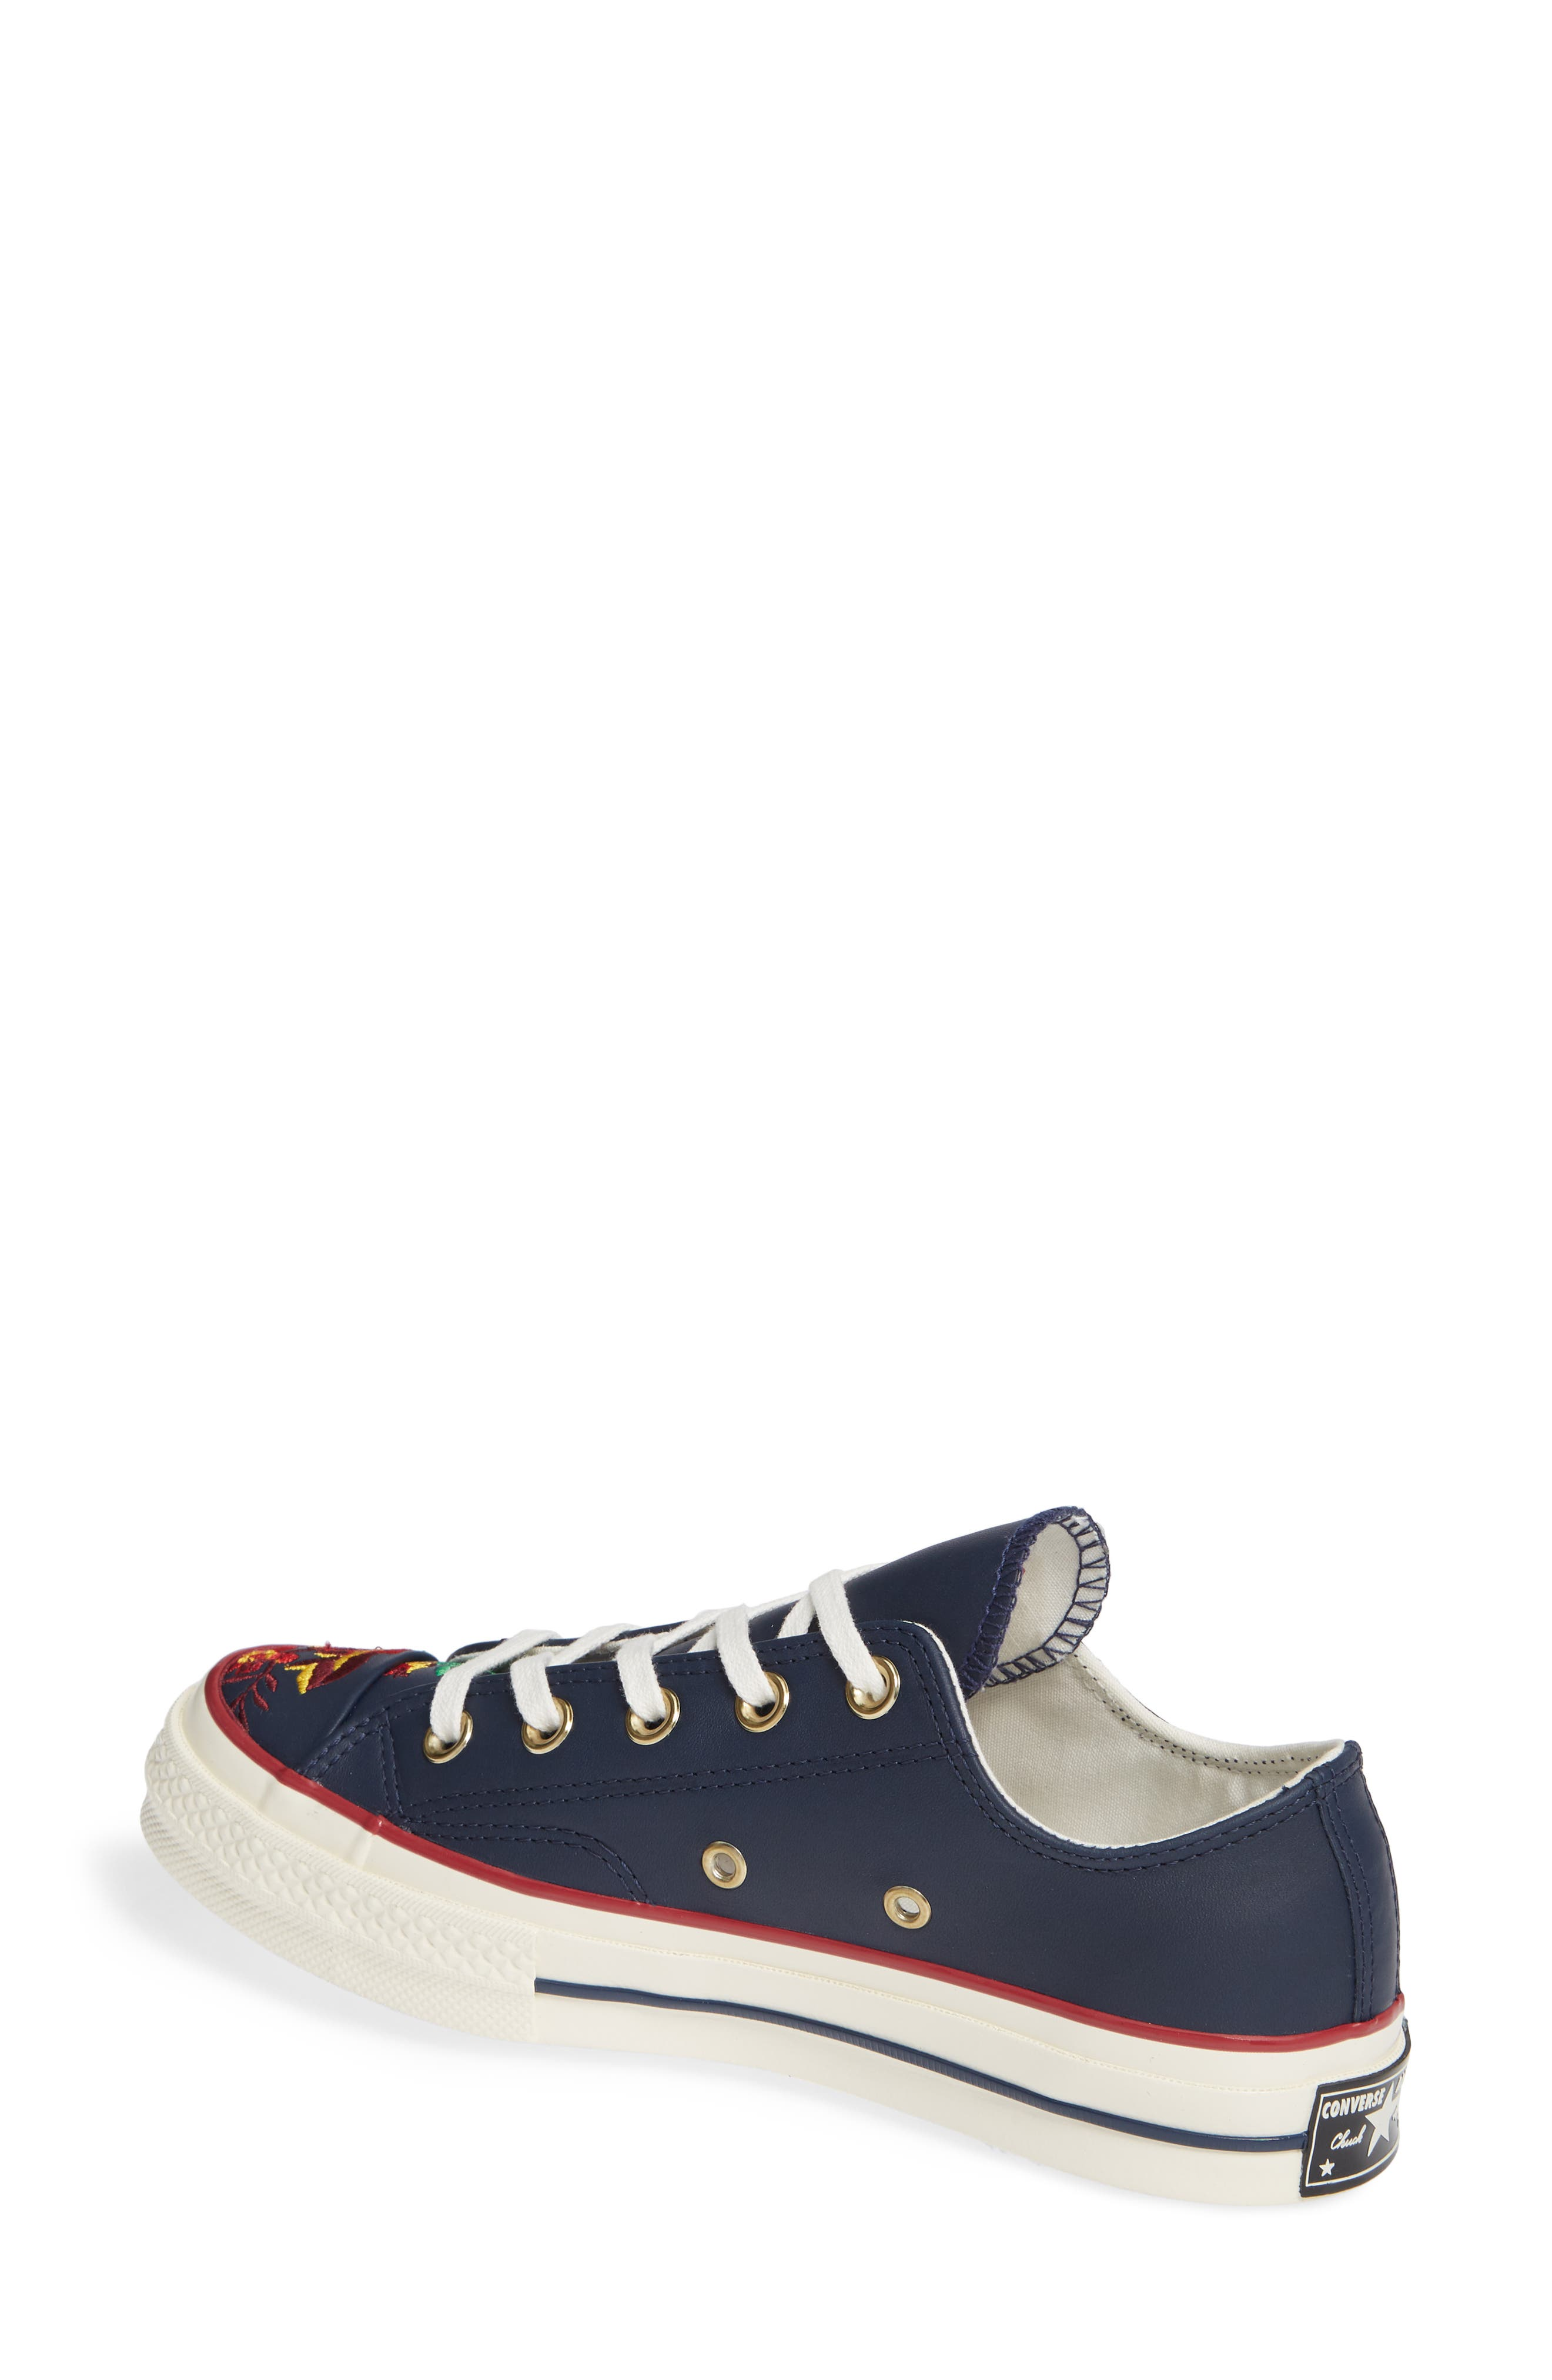 Chuck Taylor<sup>®</sup> All Star<sup>®</sup> Parkway Floral 70 Low Top Sneaker,                             Alternate thumbnail 2, color,                             OBSIDIAN/ CHERRY LEATHER